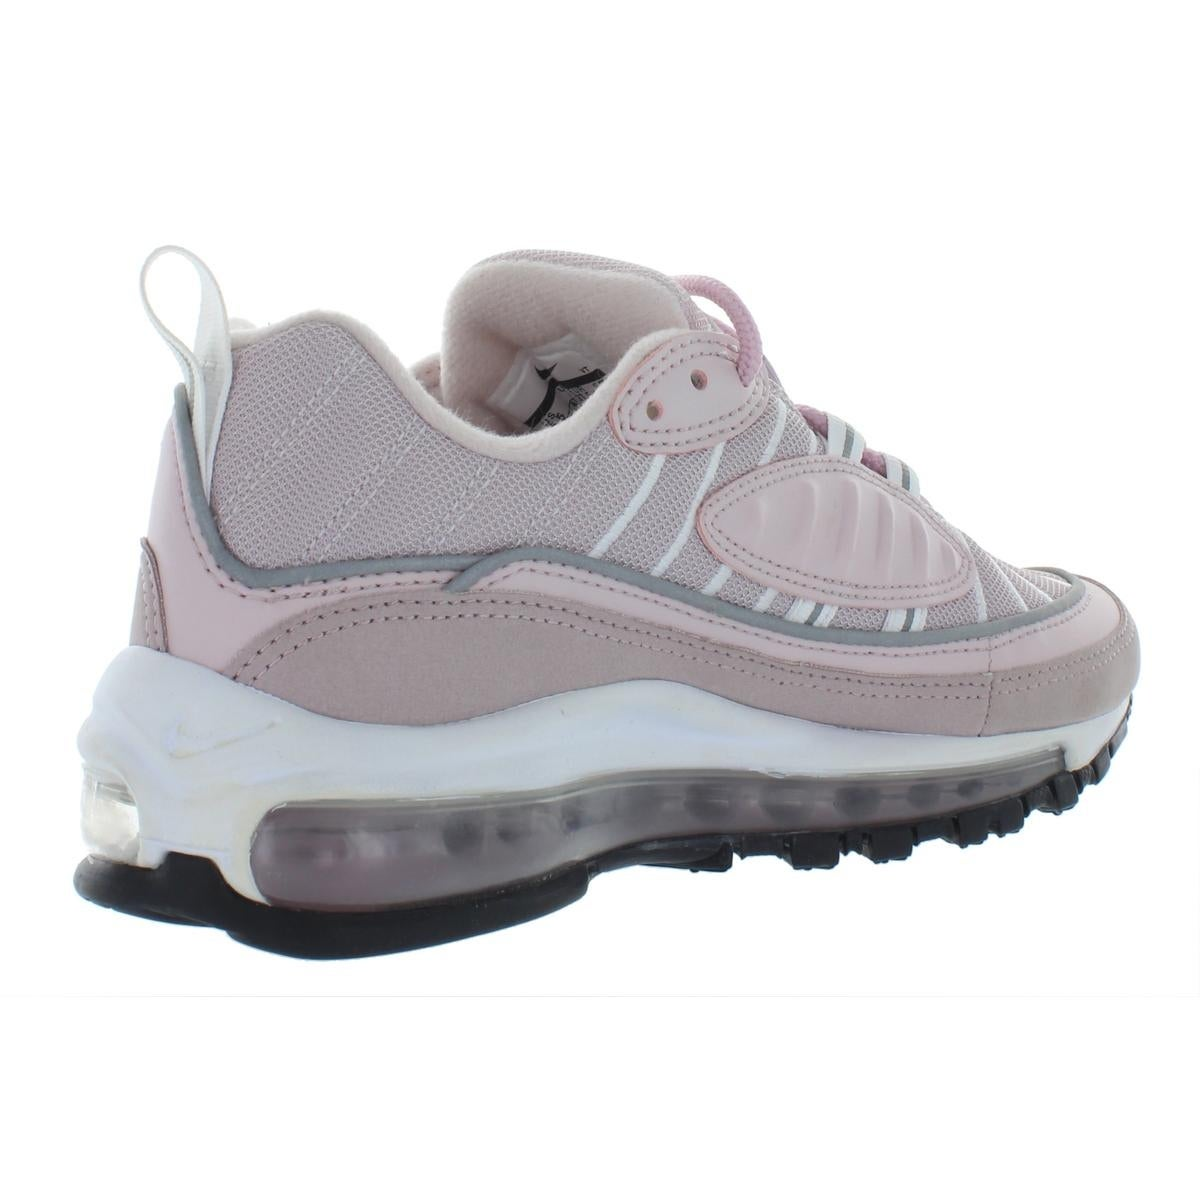 Nike Womens Air Max 98 Running Shoes Low Top Sneakers